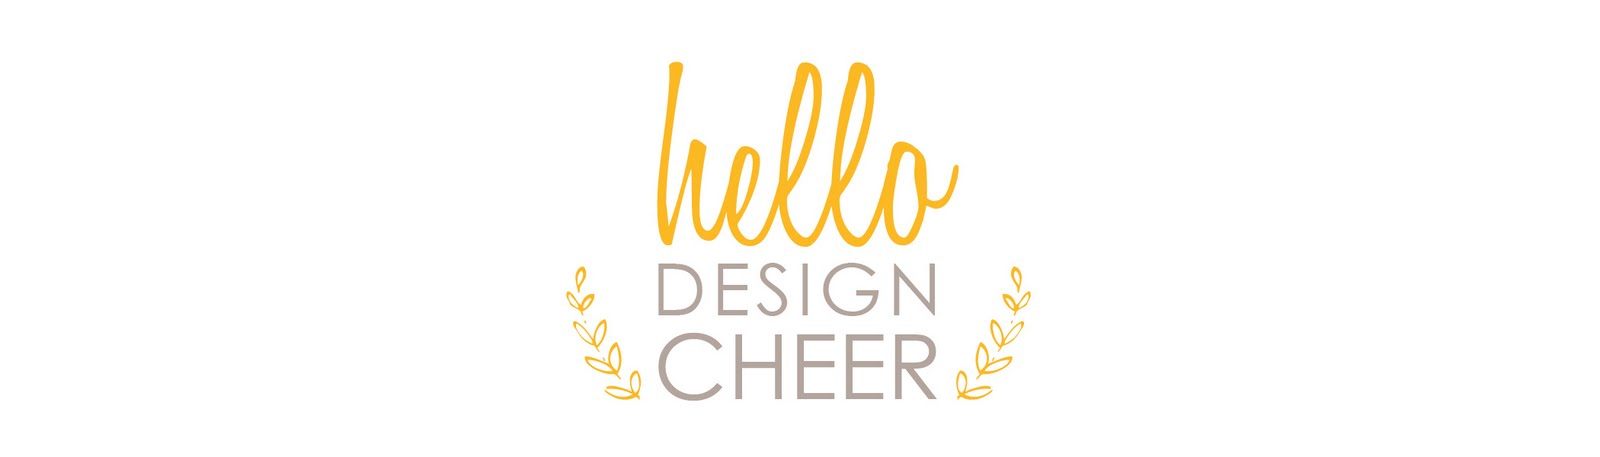 Hello Design Cheer